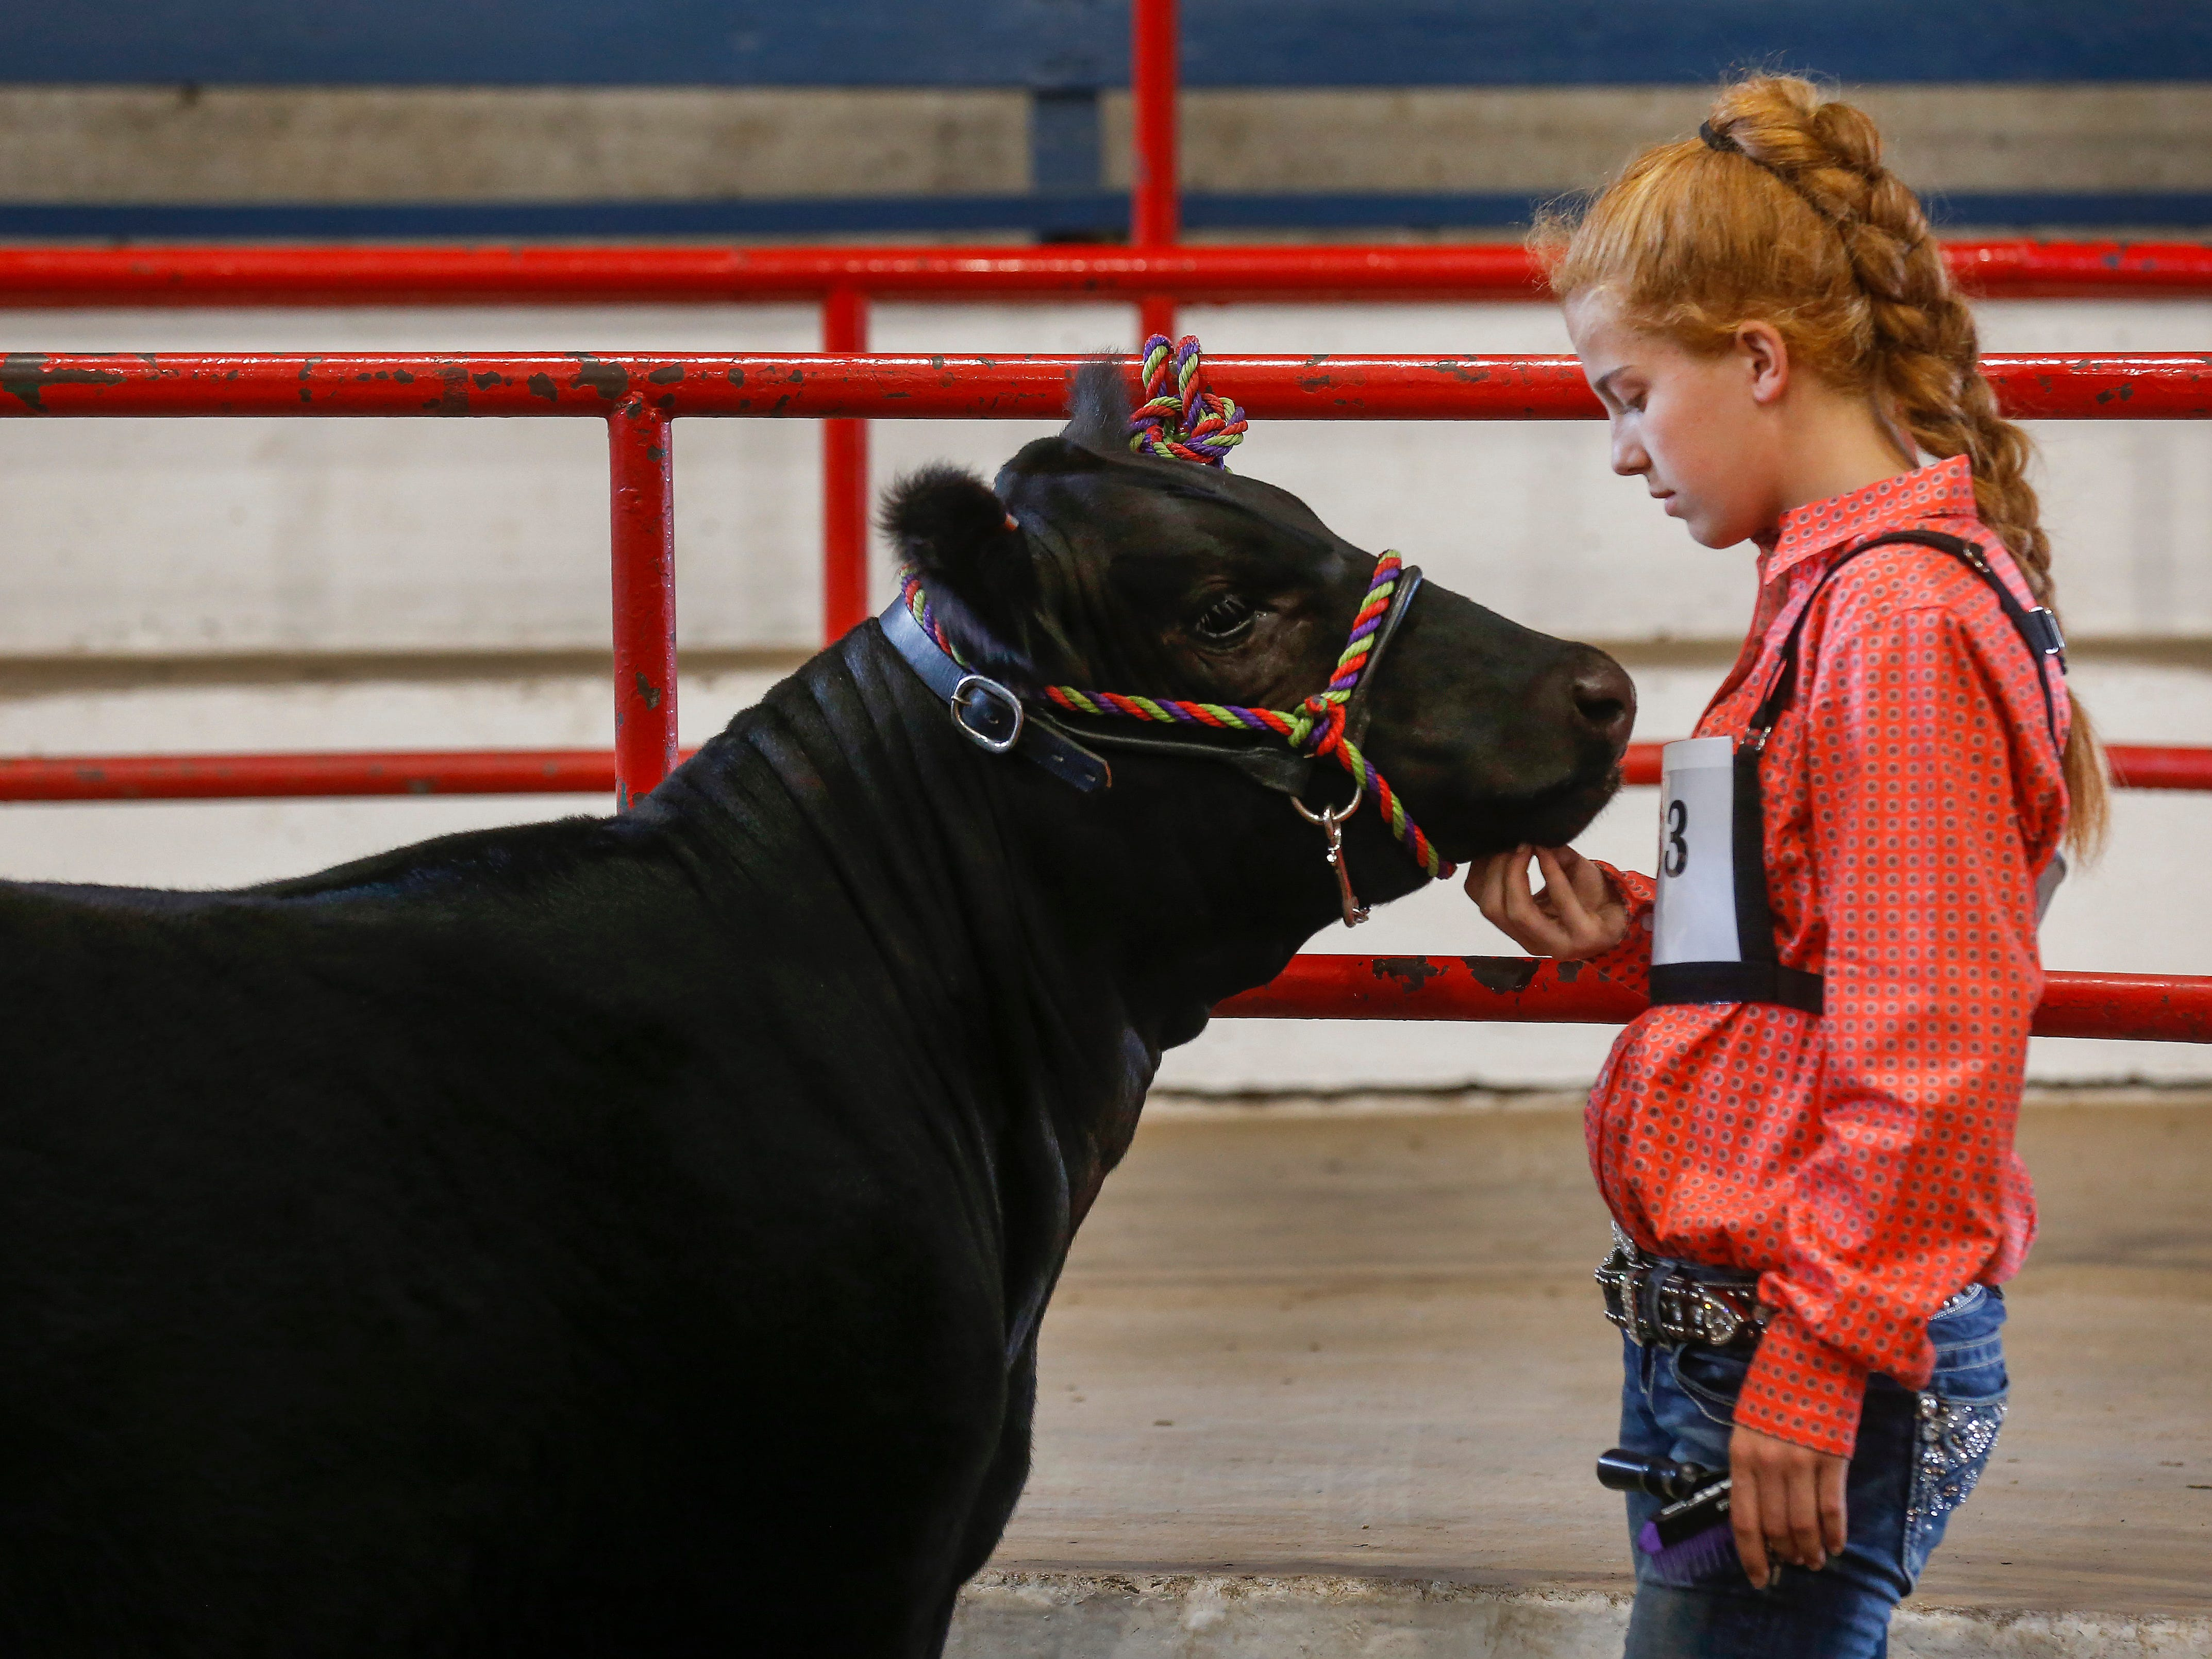 Abby McNish, 13, of Ava, scratches under Annie's chin before the Angus competition at the Ozark Empire Fair on Saturday, July 28, 2018.